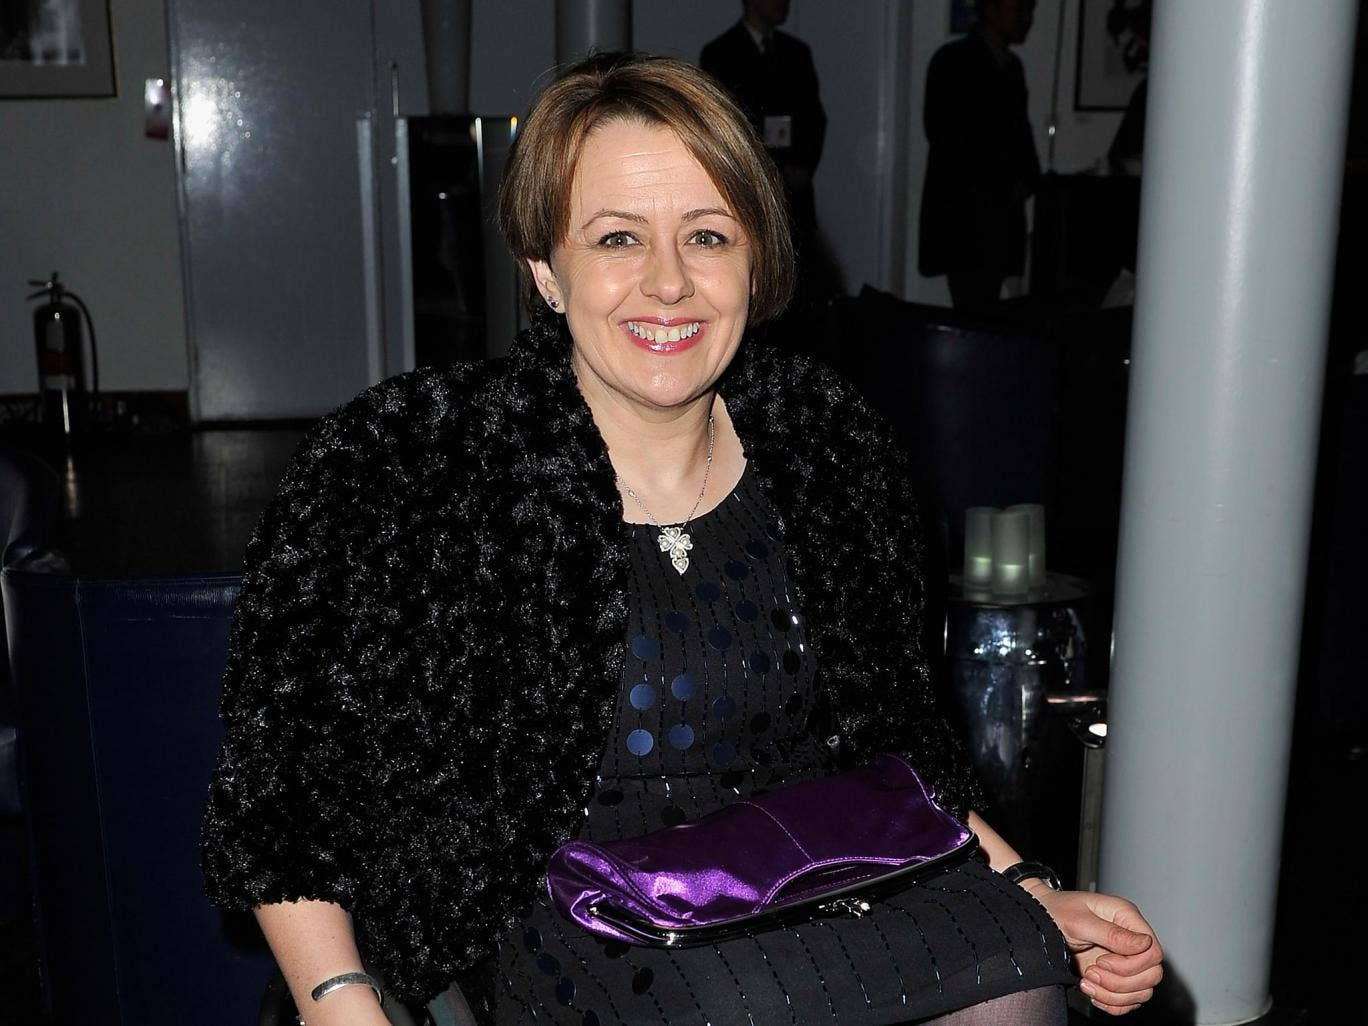 Paralympic gold medallist Tanni Grey-Thompson, said that lack of exercise leads to around 37,000 premature deaths a year in England alone